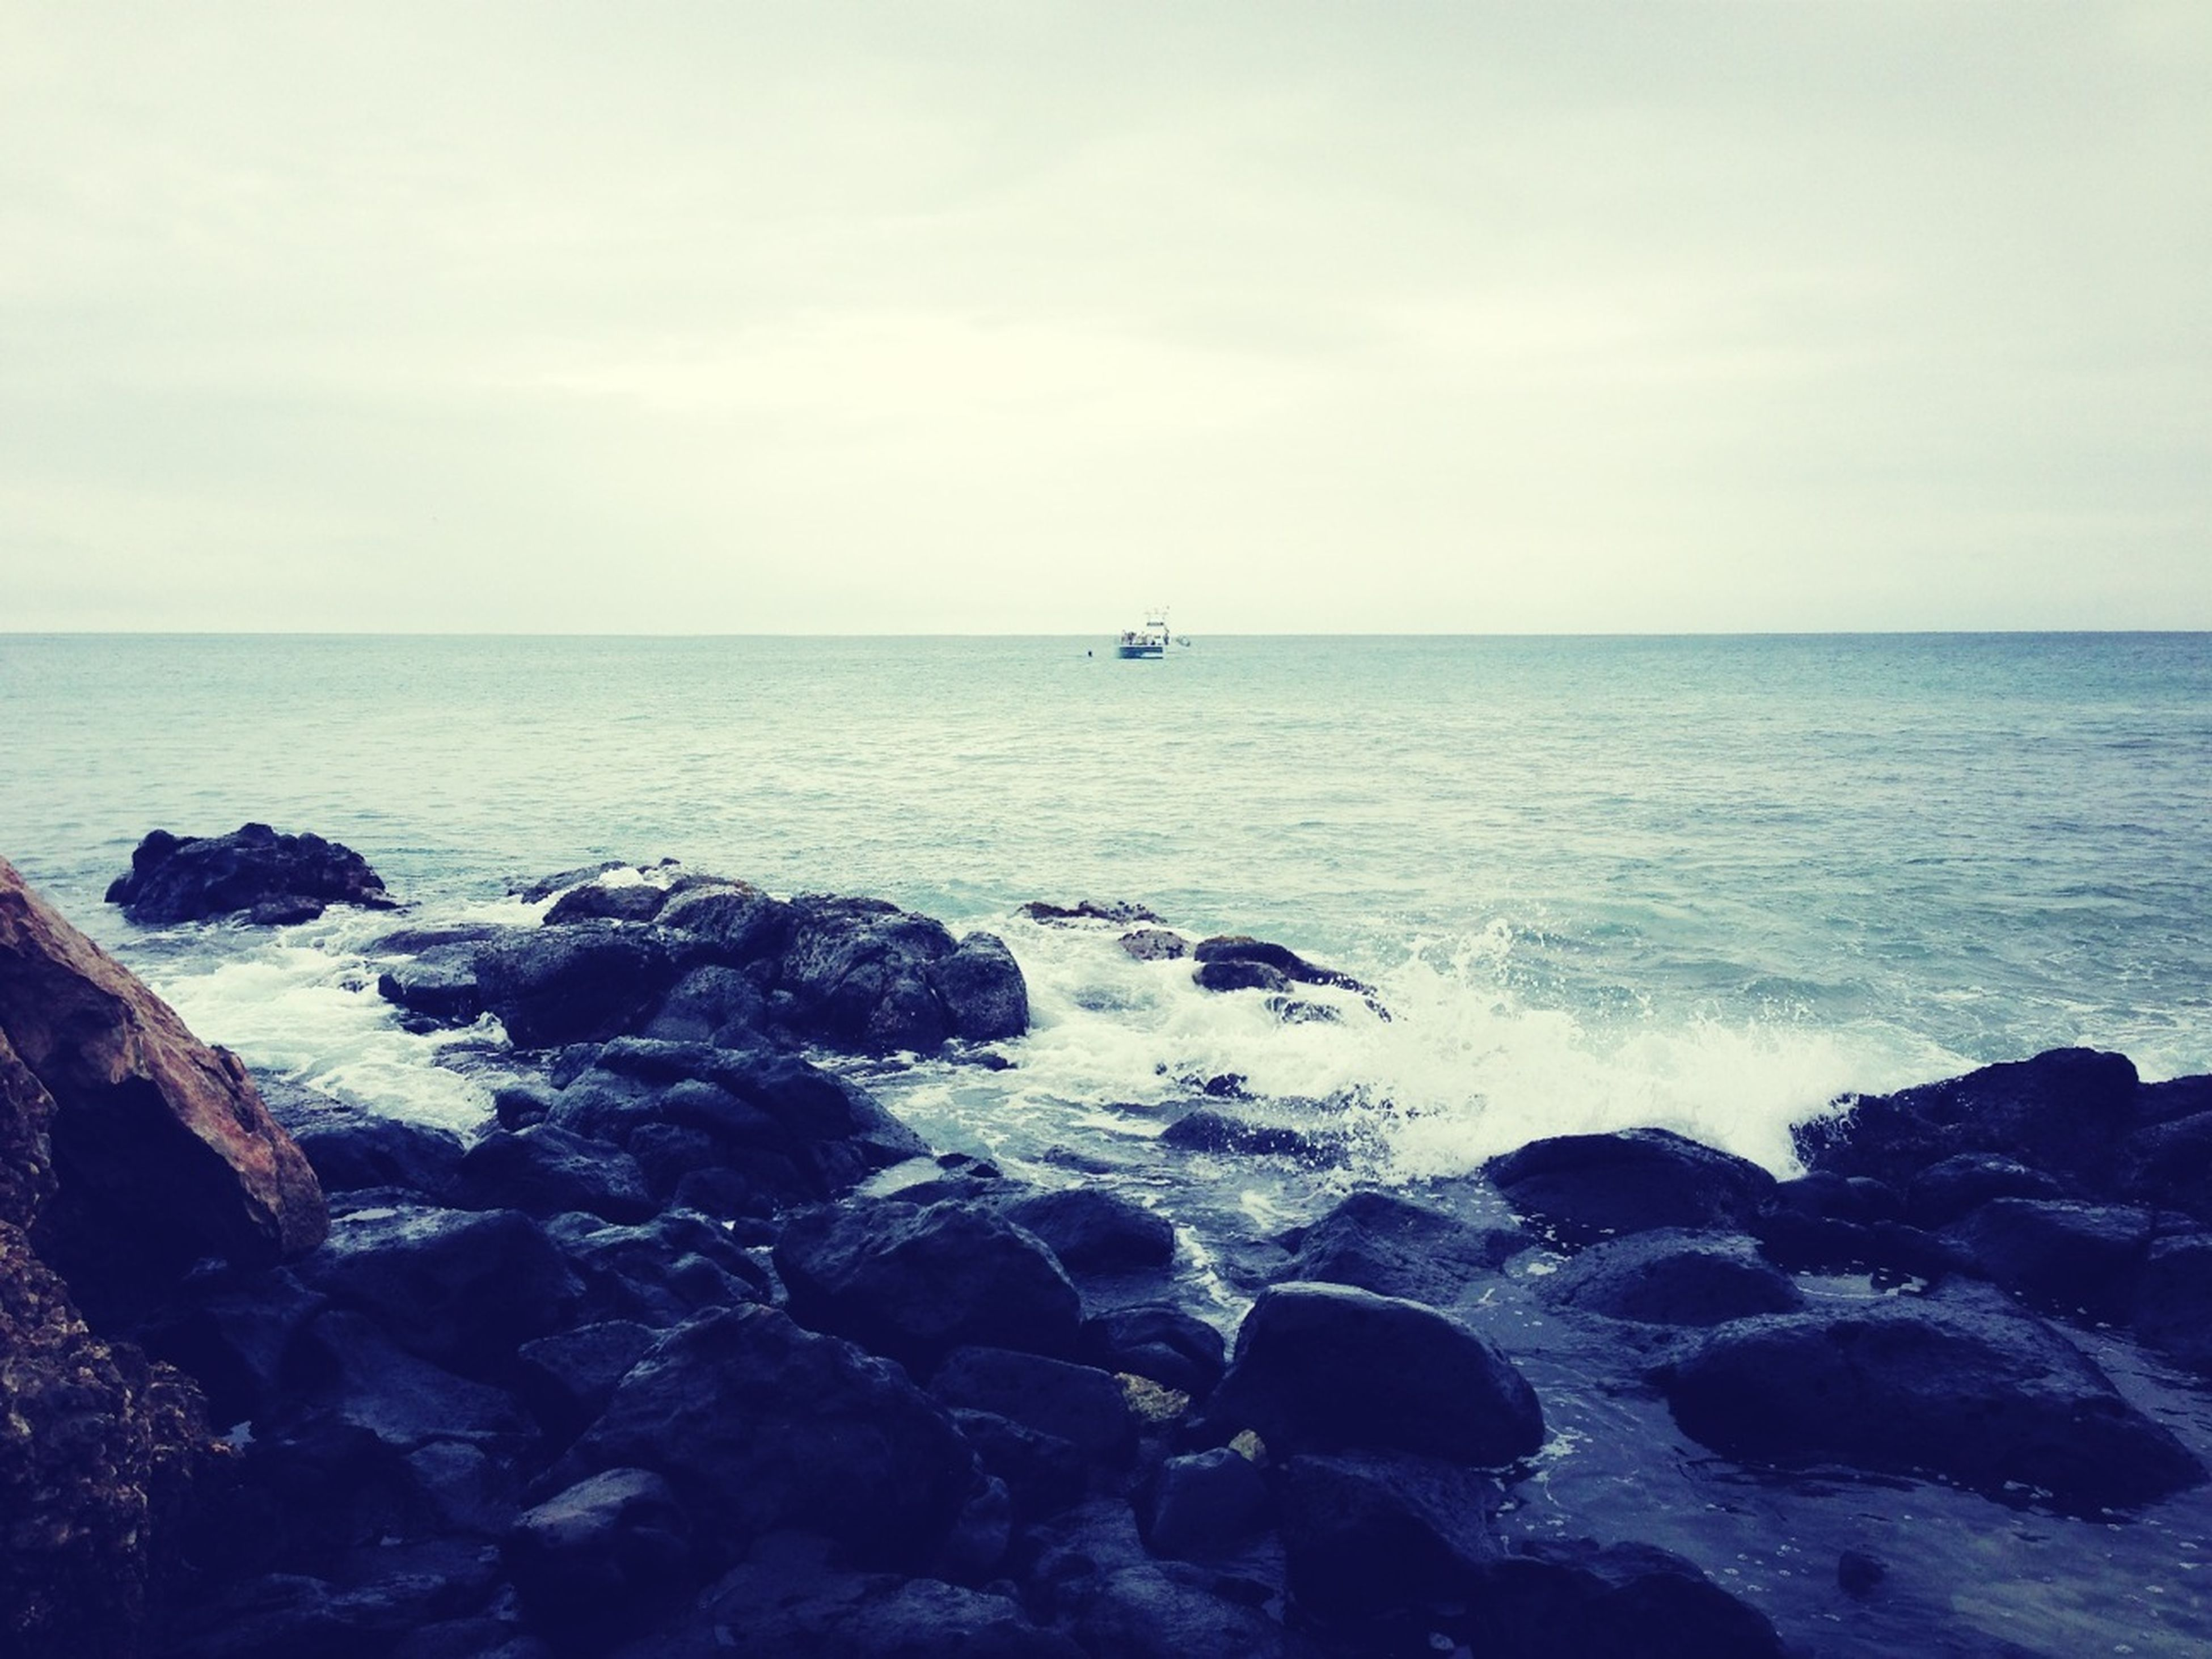 sea, horizon over water, water, scenics, beauty in nature, sky, rock - object, tranquil scene, tranquility, beach, wave, shore, nature, seascape, idyllic, surf, rock, rock formation, outdoors, remote